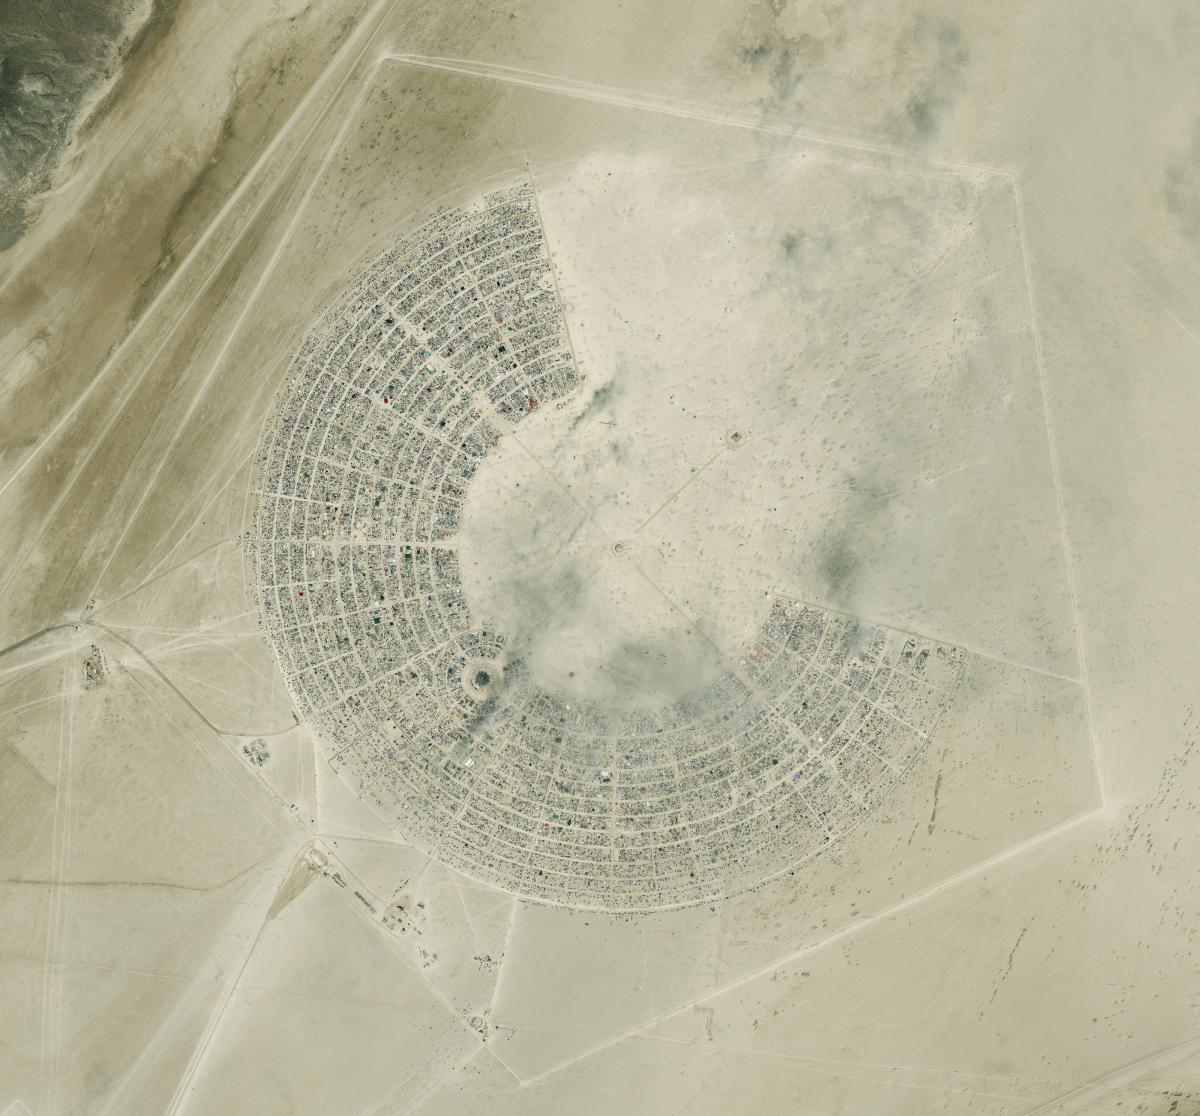 A DigitalGlobe satellite image shows an overview of the Burning Man festival in 2013.